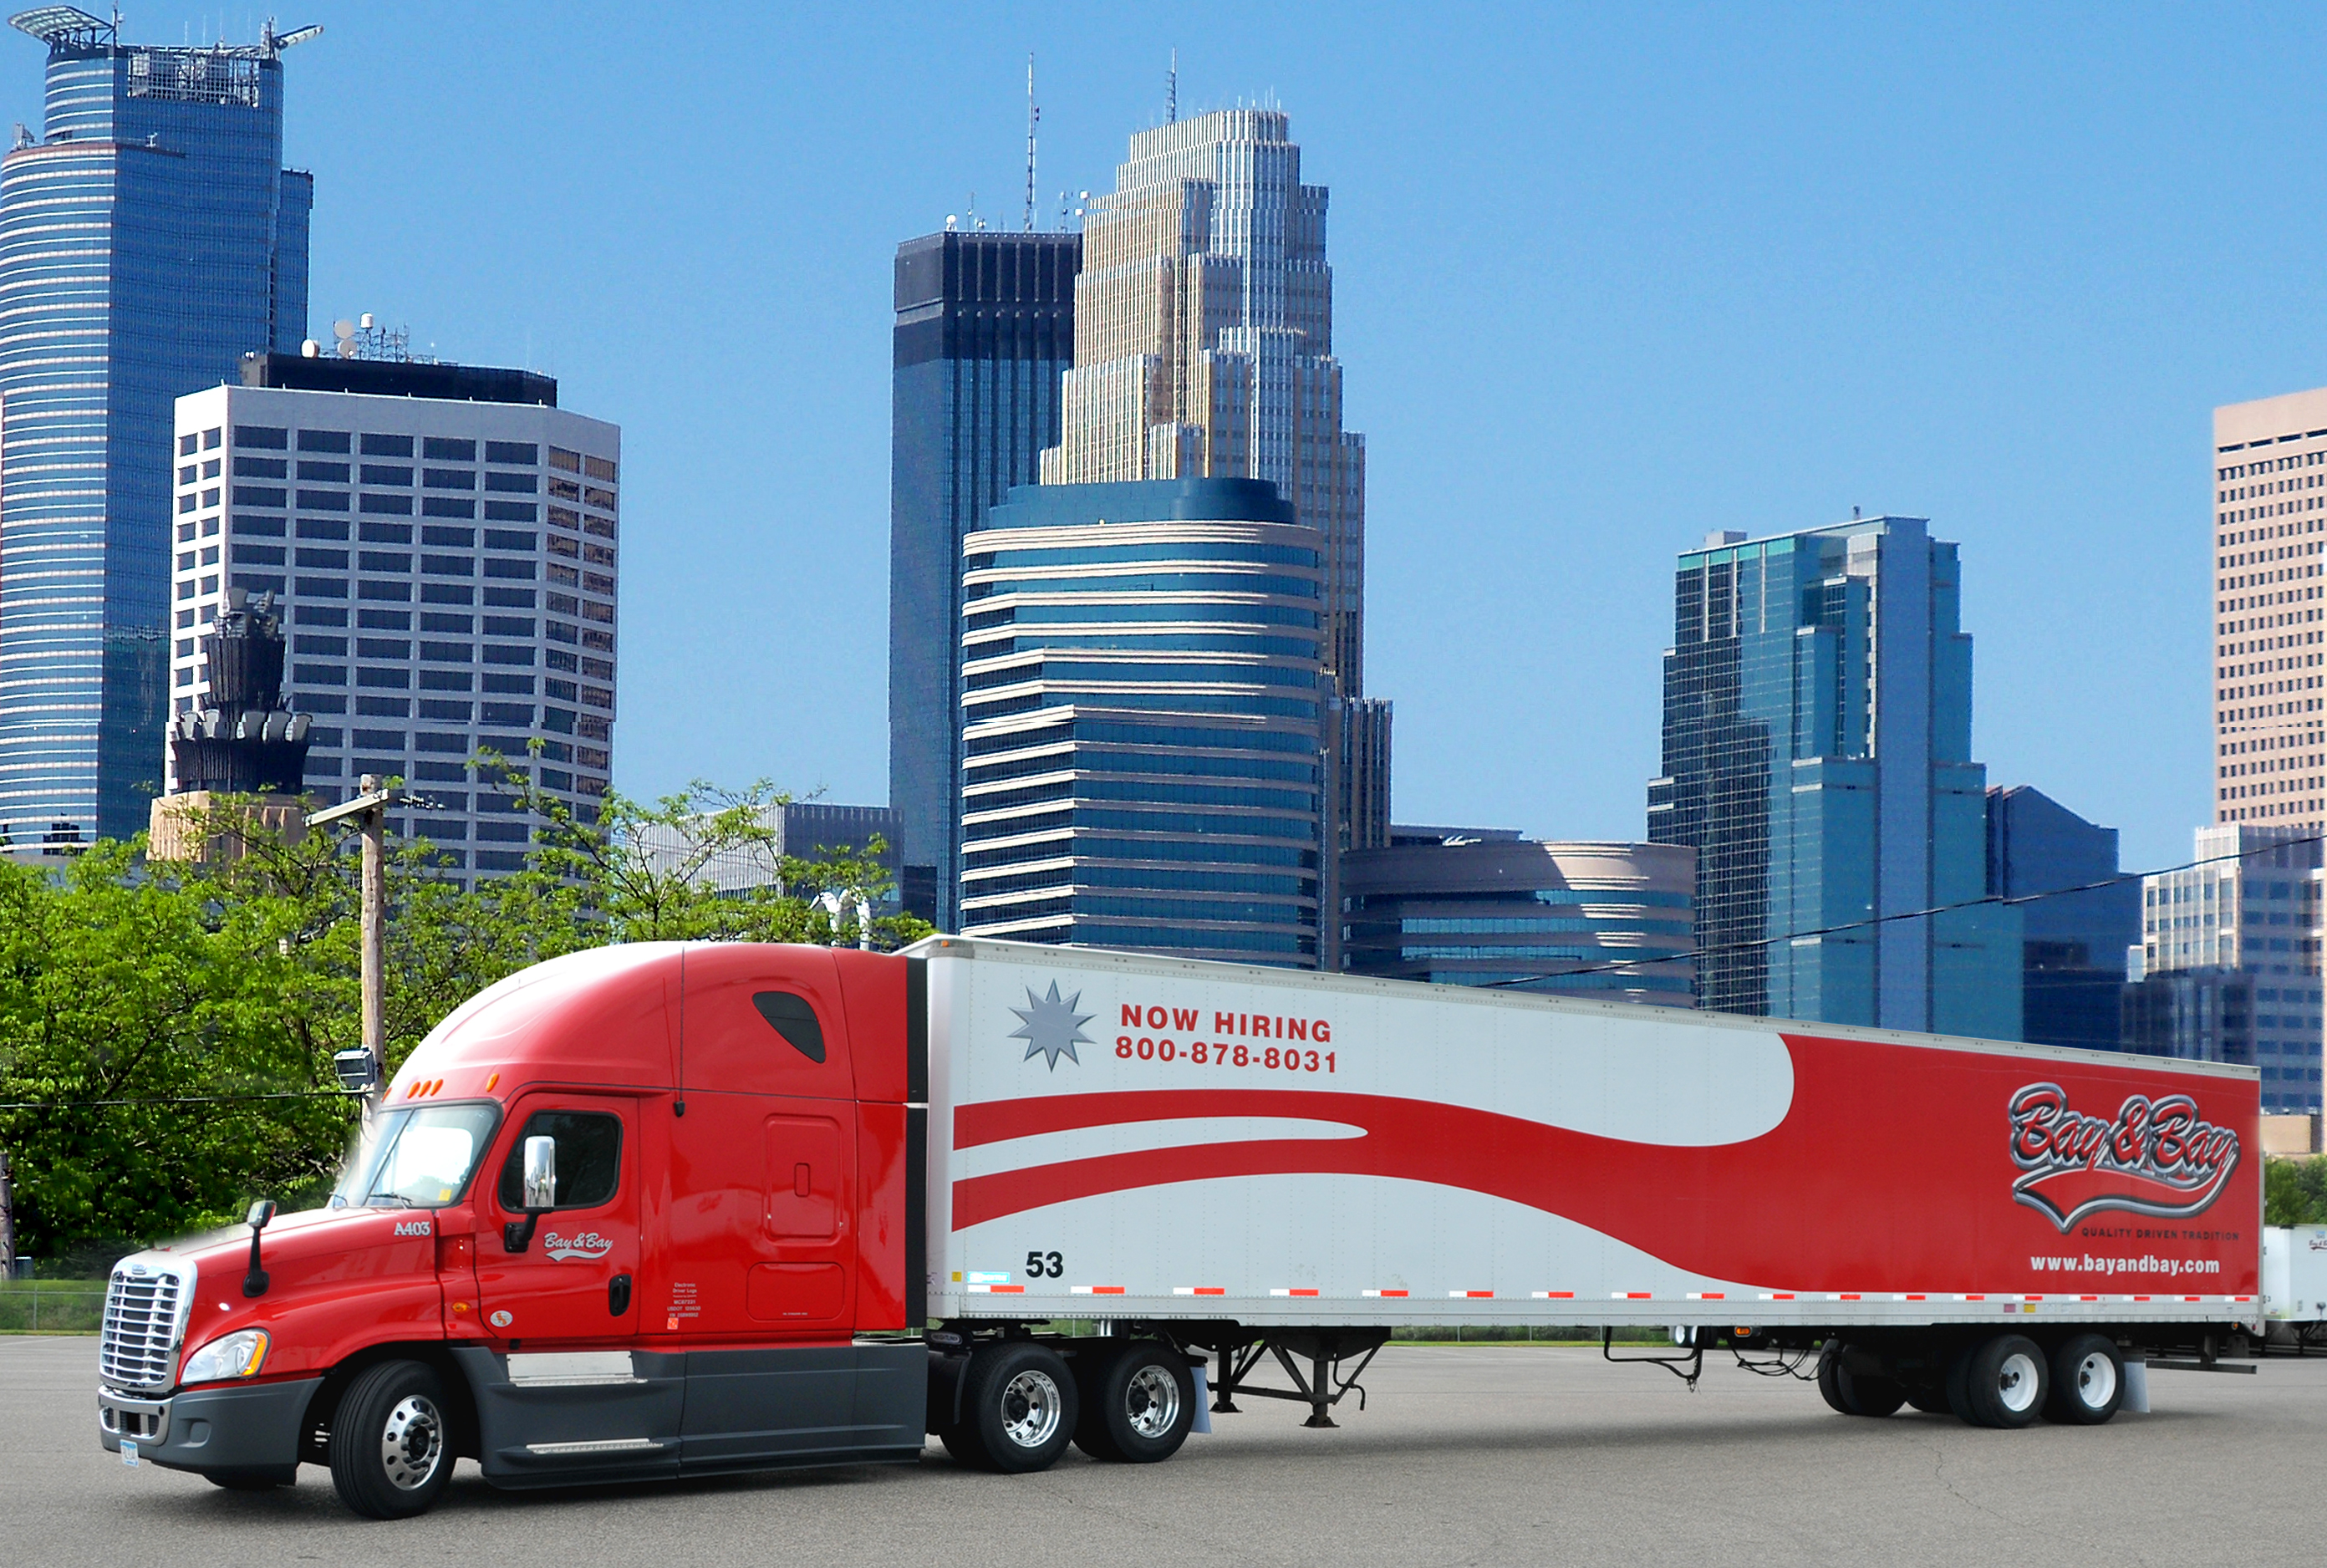 Bay and Bay adquiere J&C Trucking